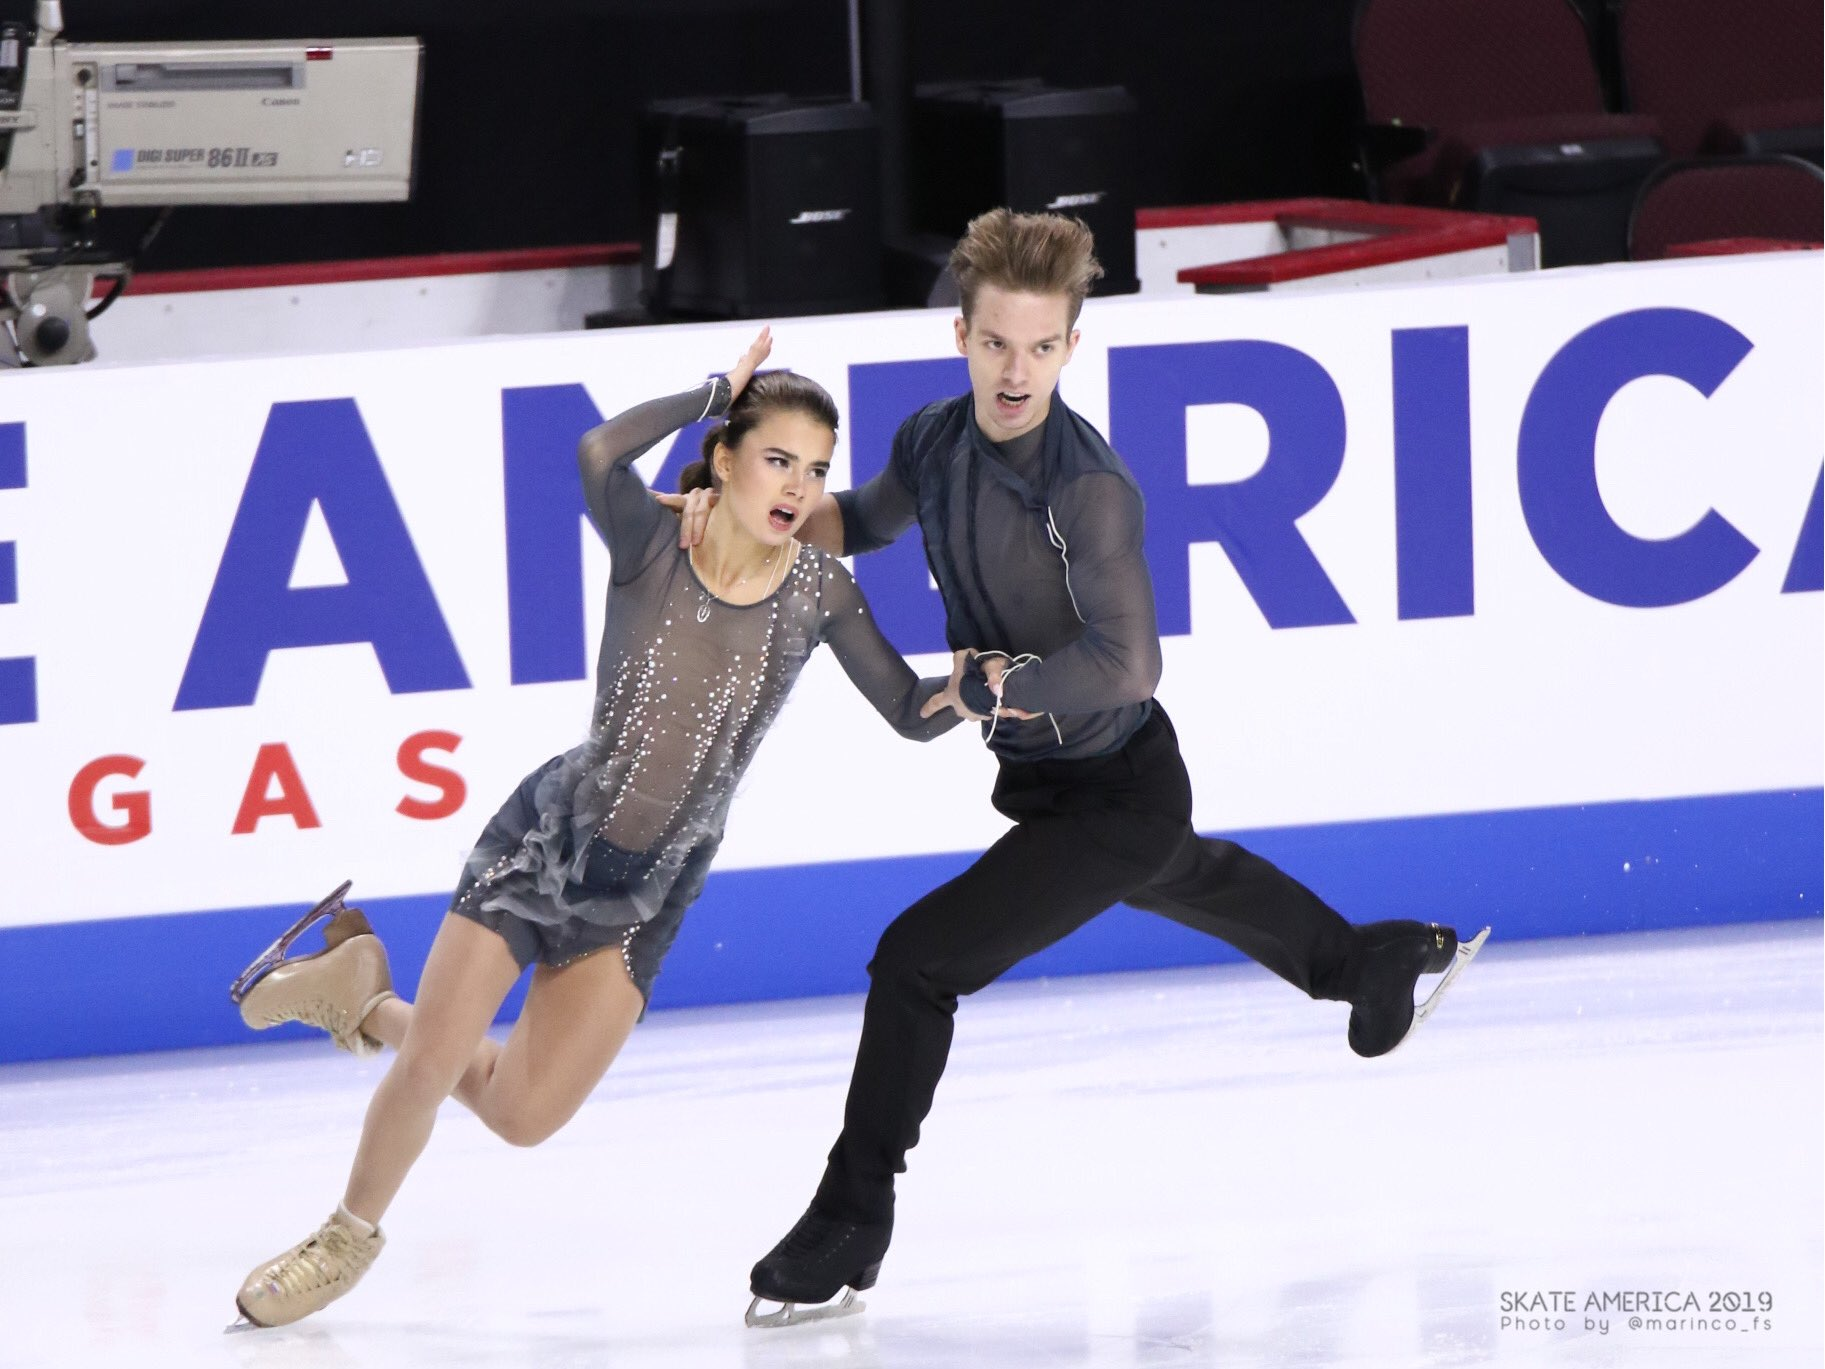 GP - 1 этап. Skate America Las Vegas, NV / USA October 18-20, 2019   - Страница 5 EHJQGVfUcAEkLrG?format=jpg&name=large